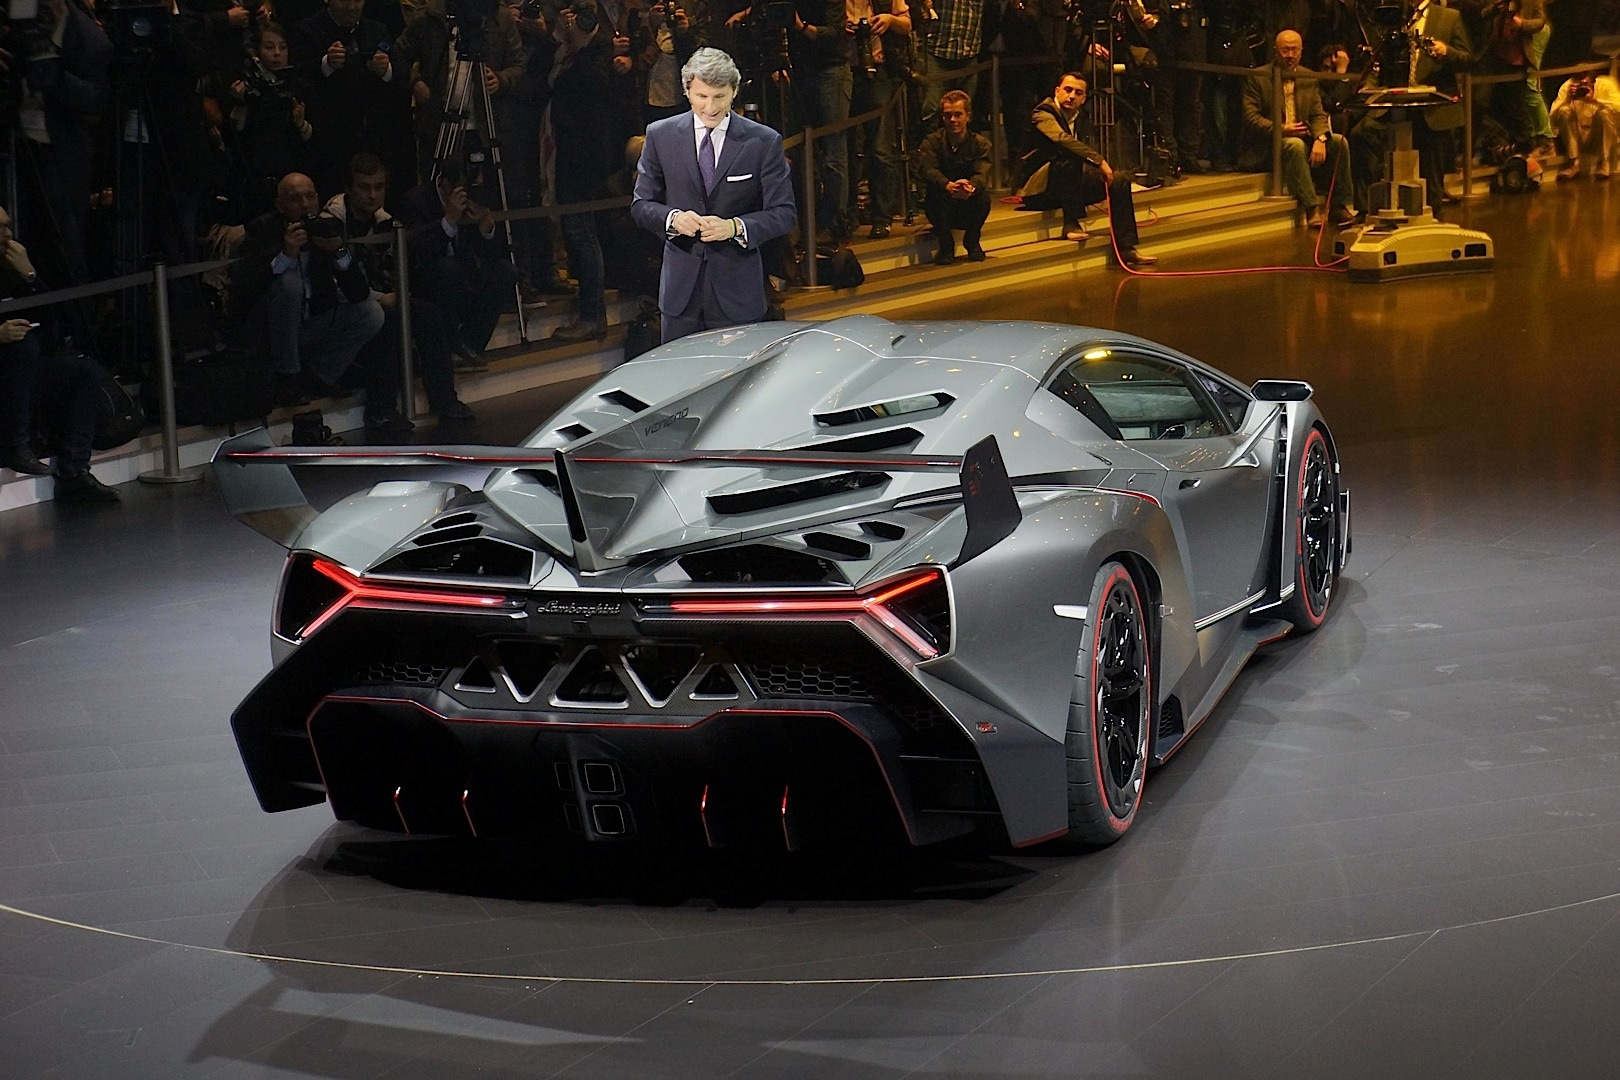 Lamborghini Veneno For Sale >> Second Lamborghini Veneno Listed For Sale Speculation Now